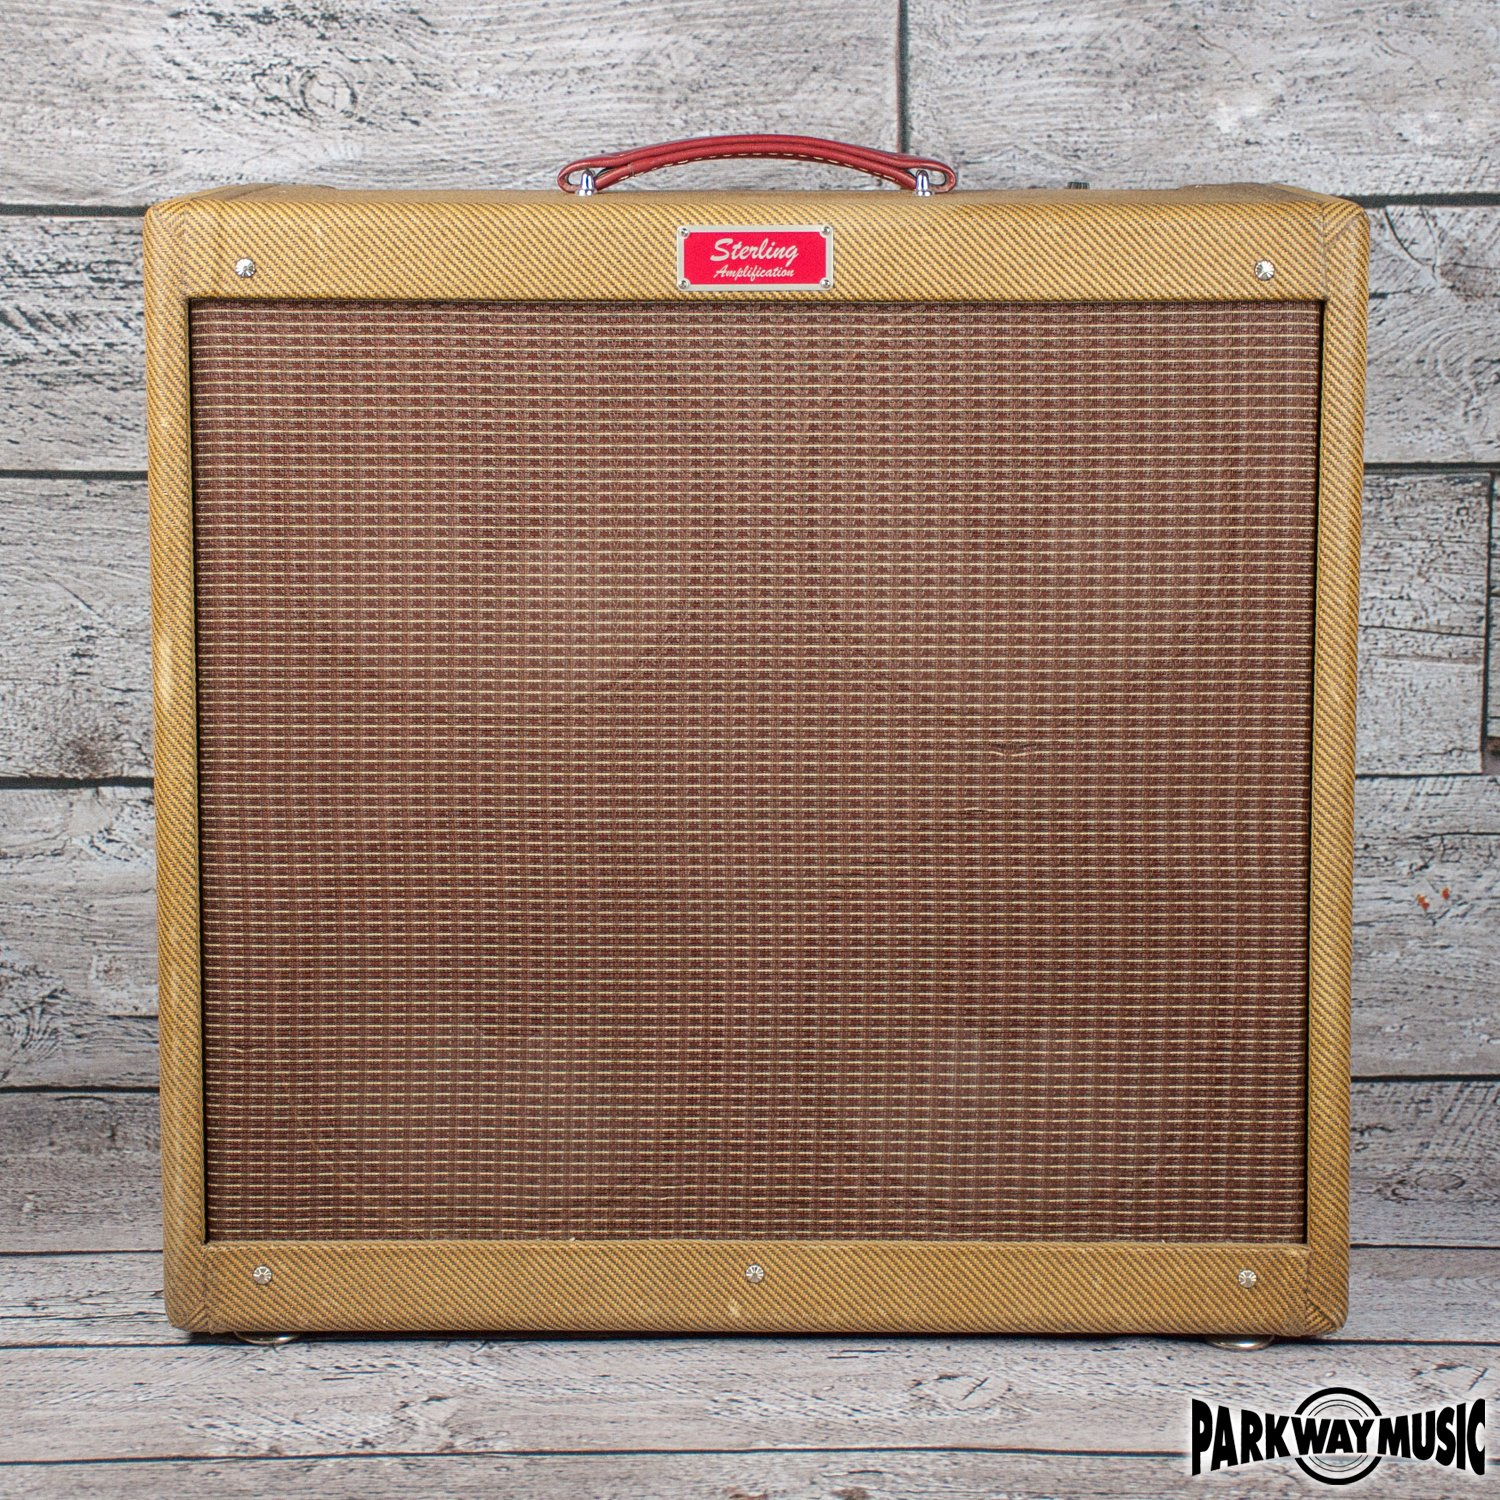 Sterling 5F6A Tweed Bassman Combo (USED)